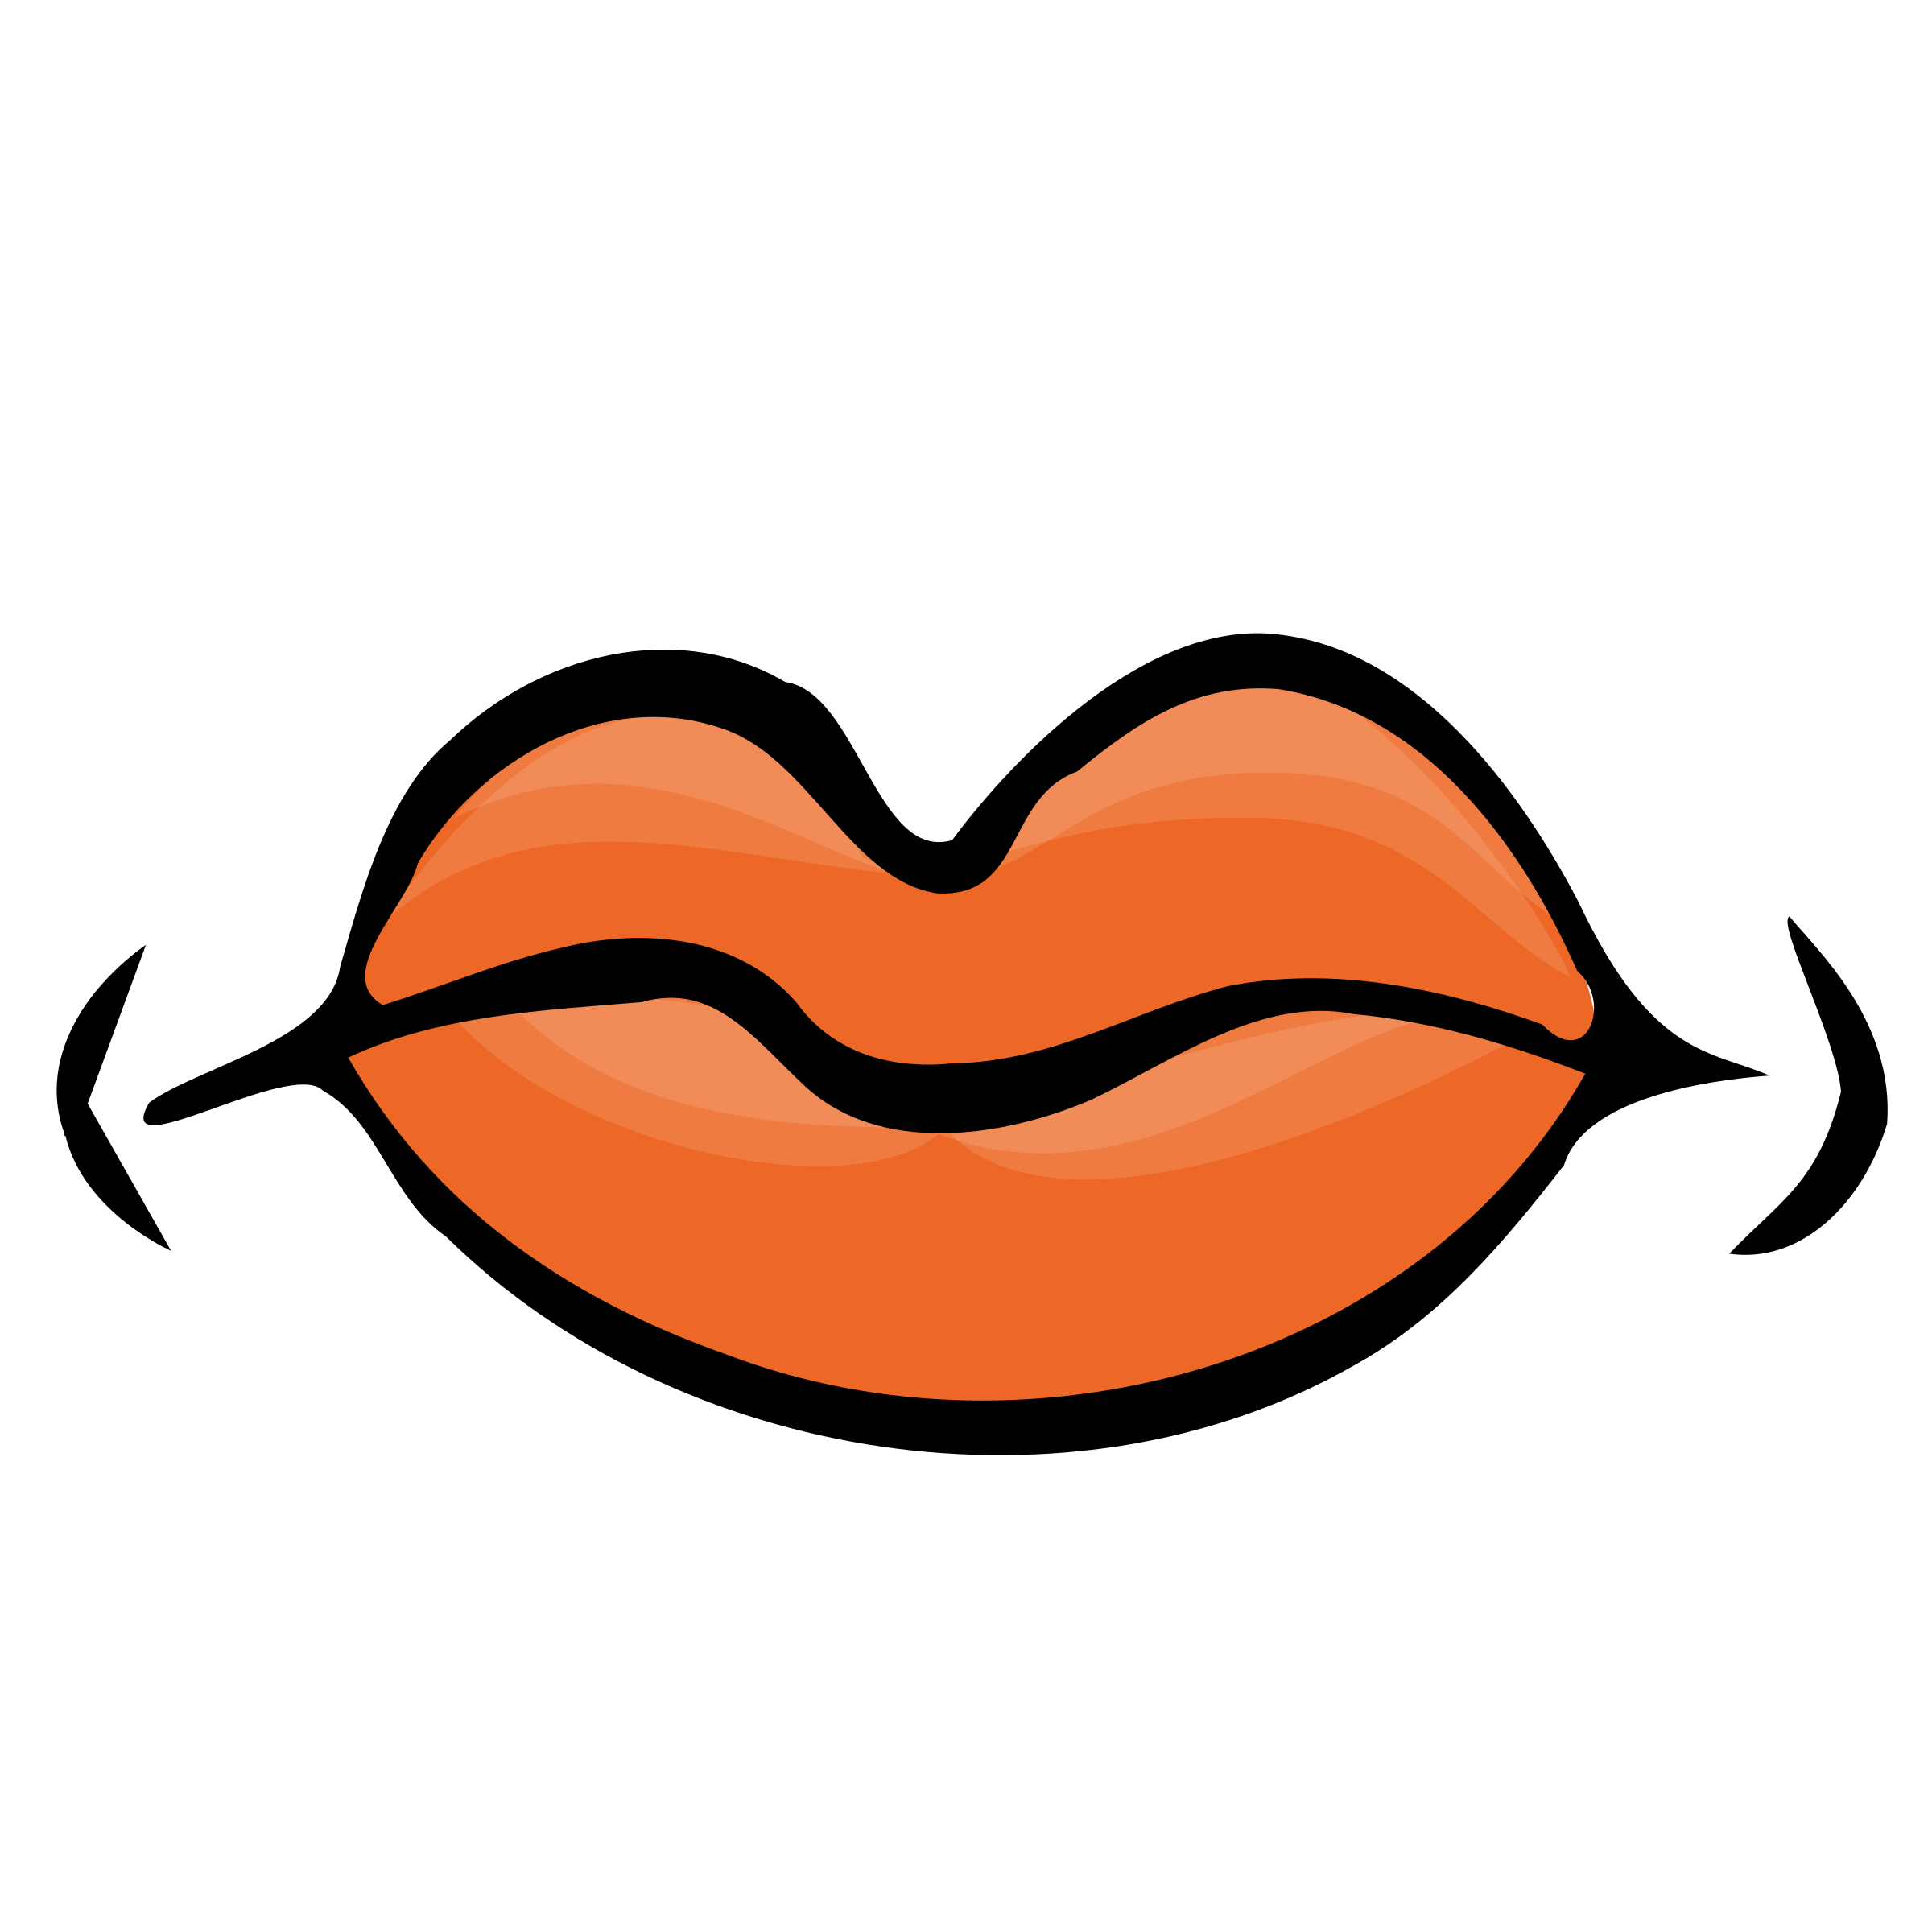 image transparent Lips lip free on. Closed clipart